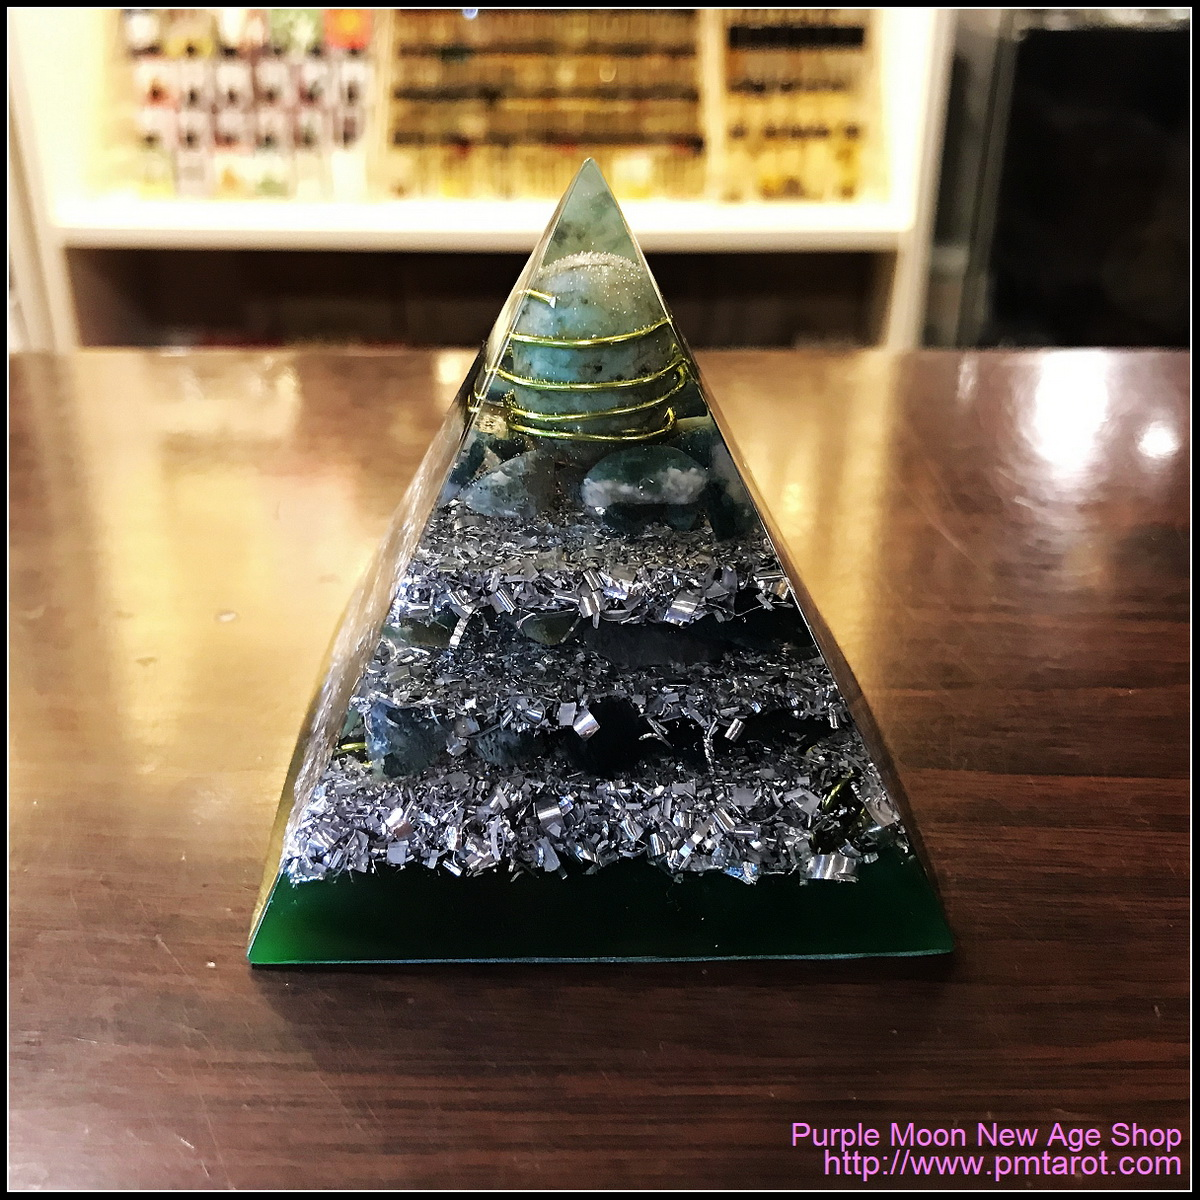 Avalon Magick x Oplusnet - Turquoise High Quality Orgonite Pyramid